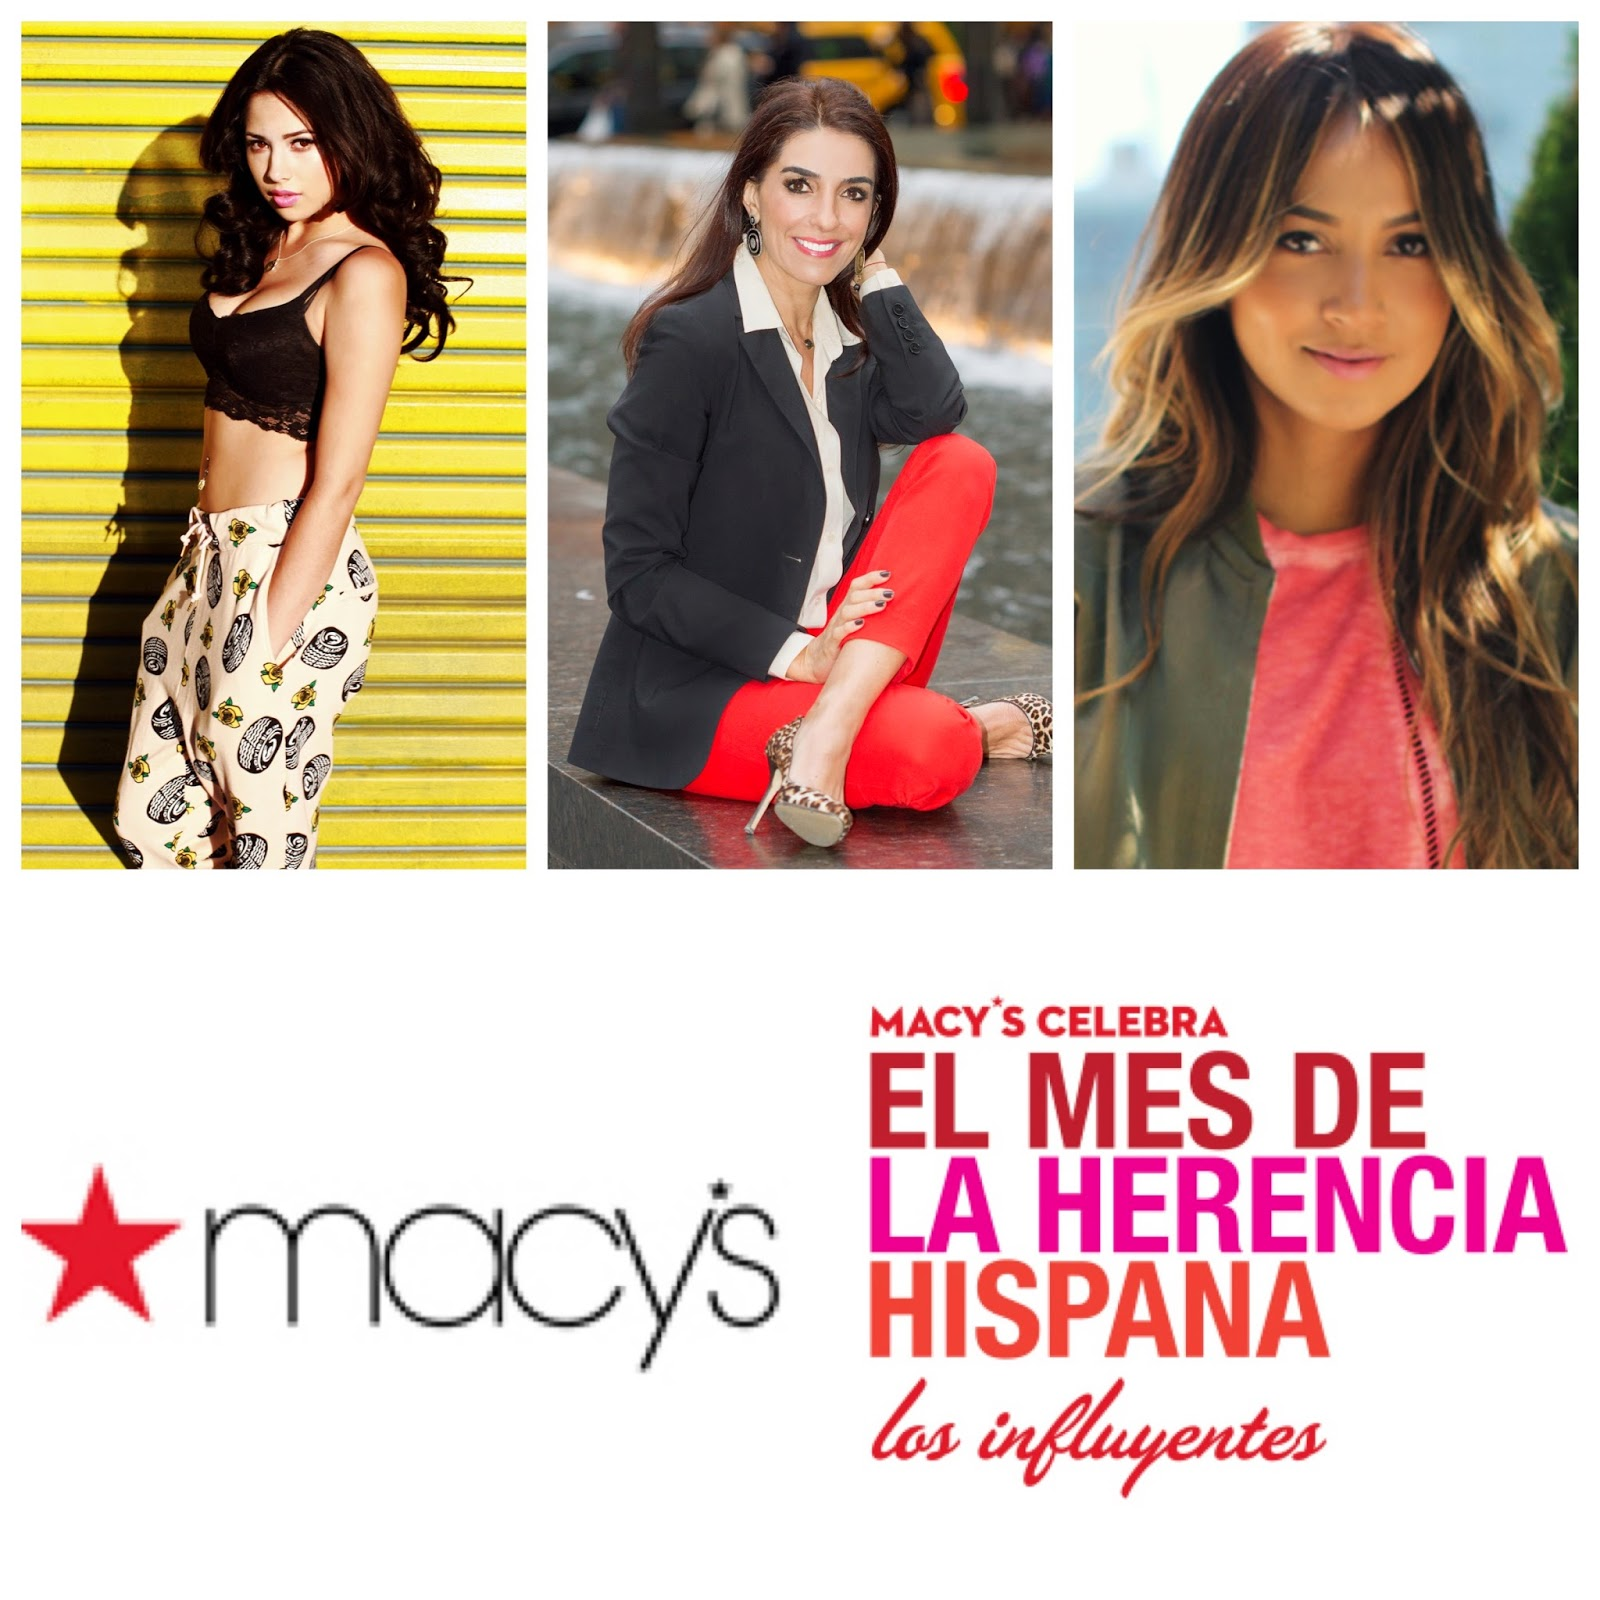 Macy's, Hispanic Heritage Month, Jasmine Villegas, Kika Rocha, Sincerely Jules, #HHM, Westfield Valley Fair, Macy's Fashion Valley, San Diego Fashion